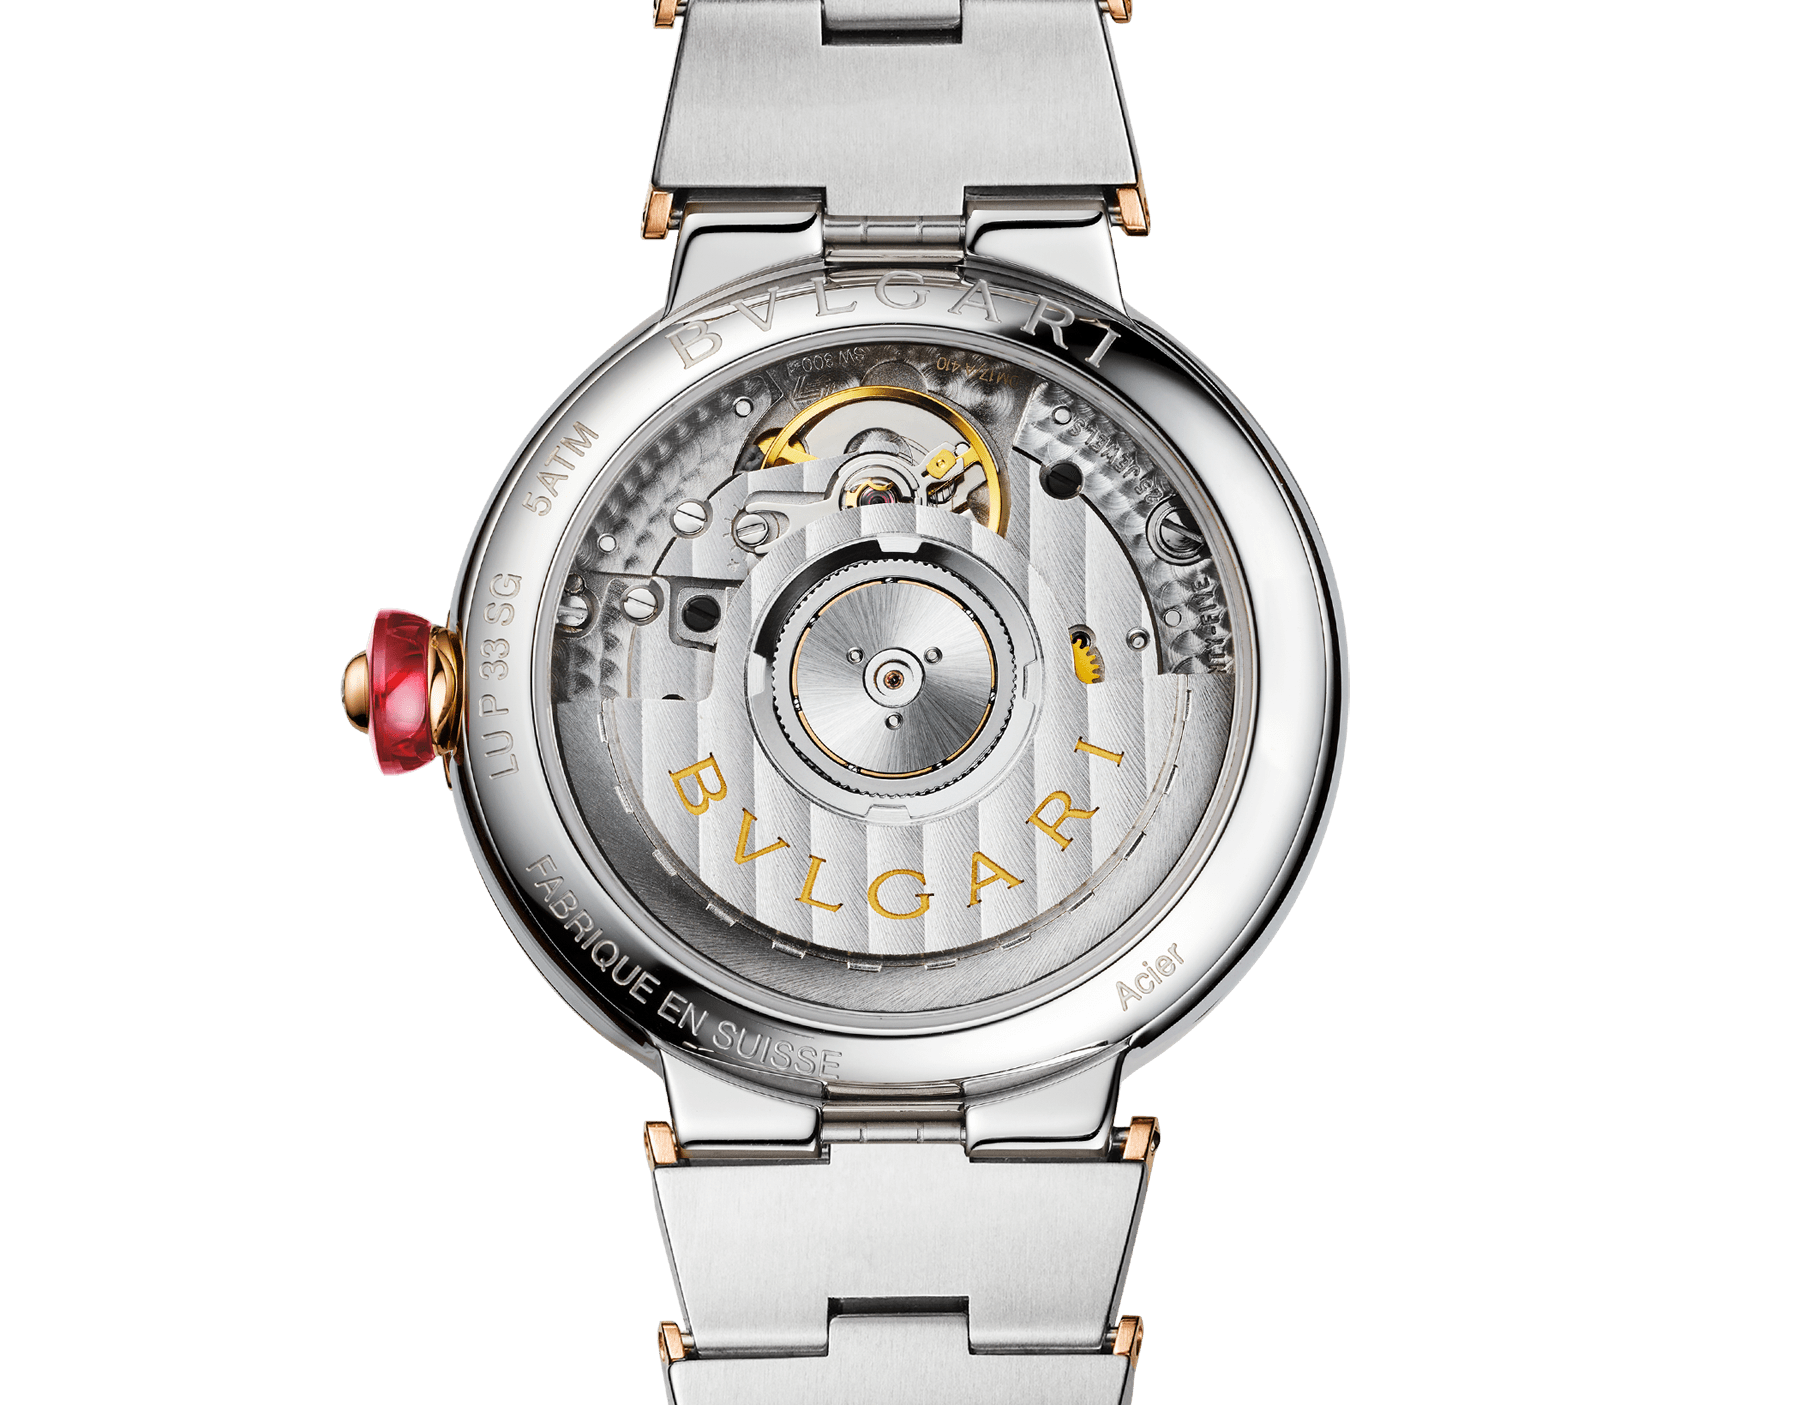 LVCEA watch in 18kt rose gold and stainless steel case and bracelet, set with diamonds on the bezel, and white mother-of-pearl dial with diamond indexes. 102476 image 3